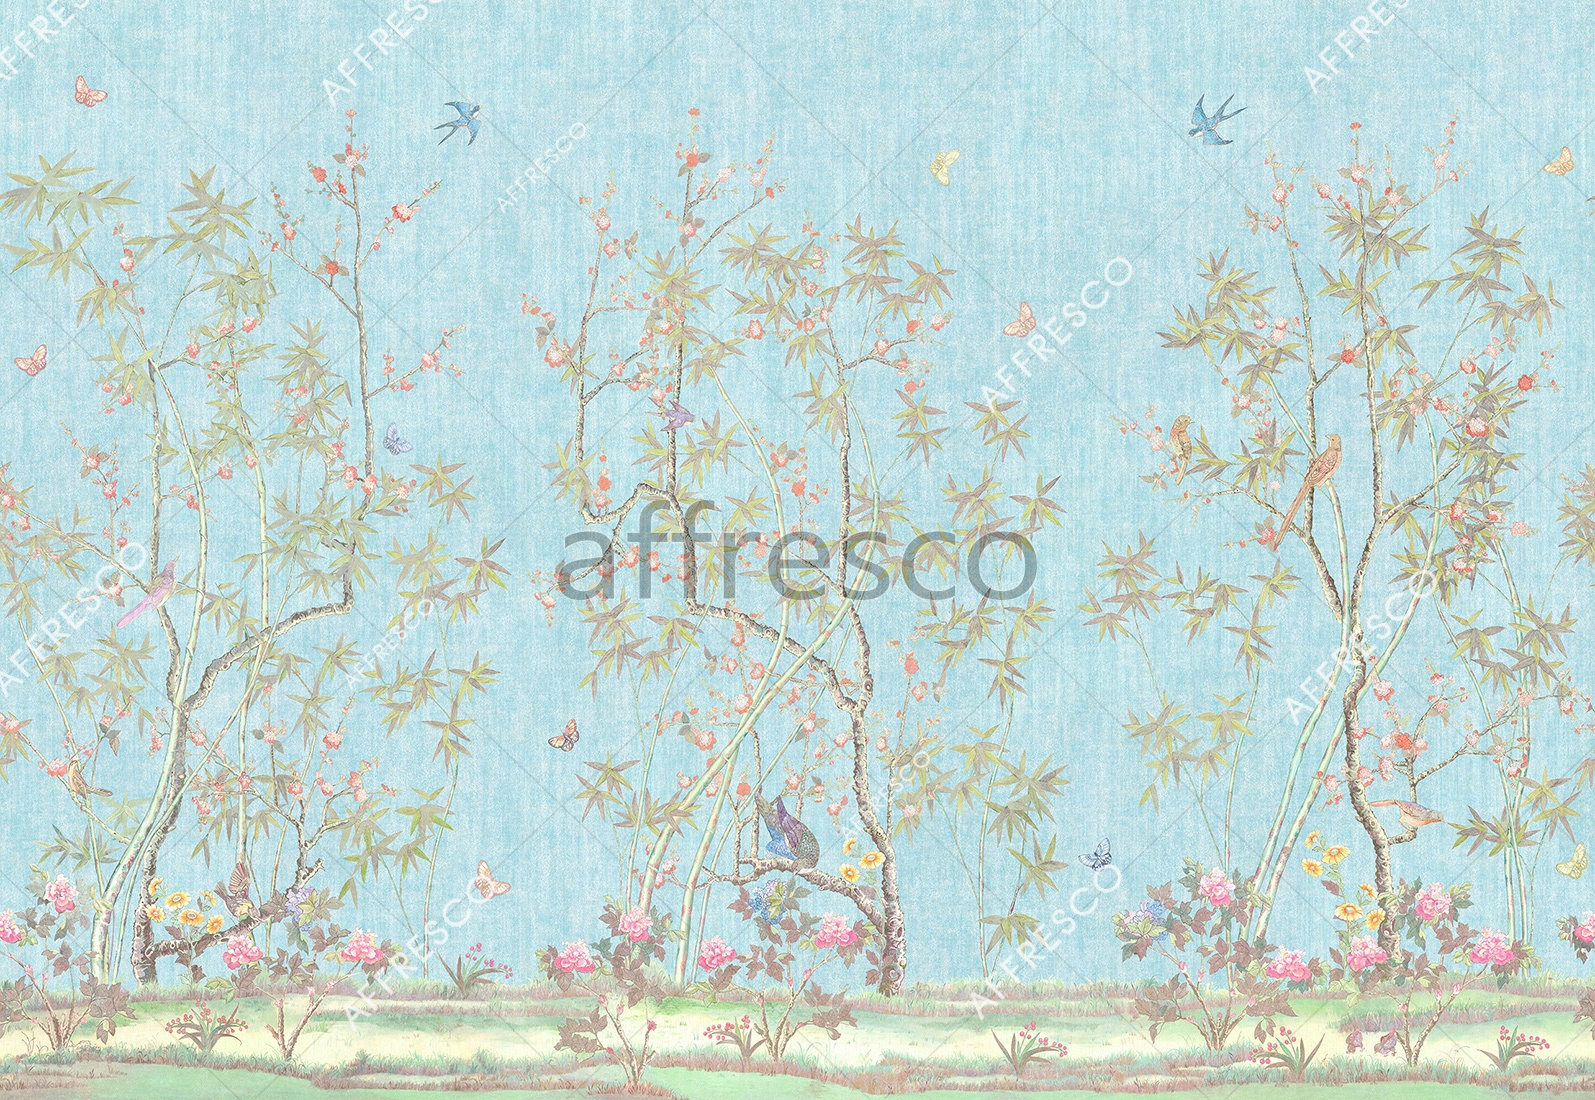 ID136148 | Gardens |  | Affresco Factory